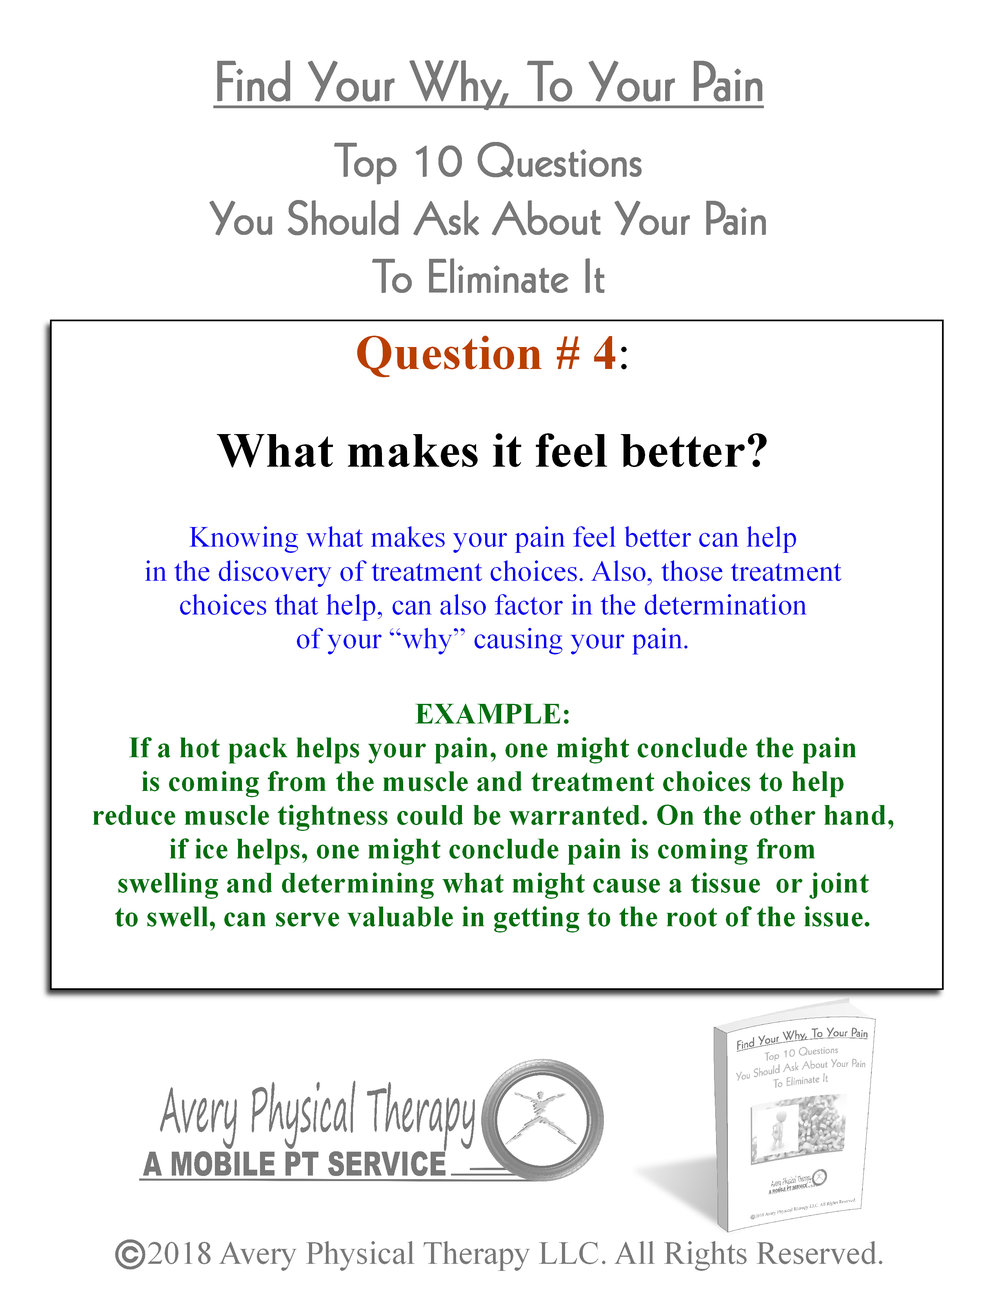 Top 10 Pain Questions 4-6E.JPG